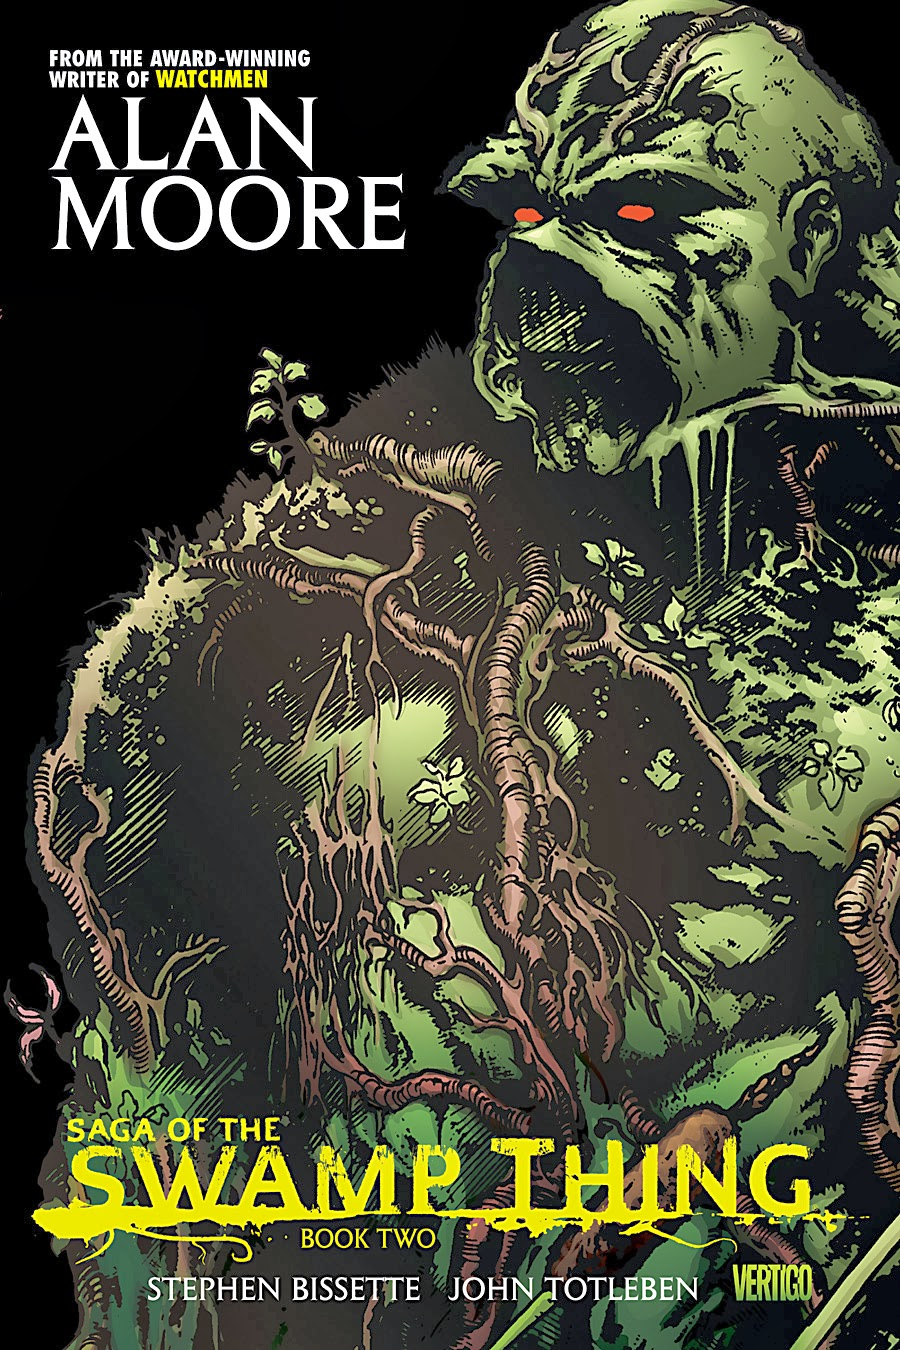 Uncommon Comics: Saga of the Swamp Thing, Book Two